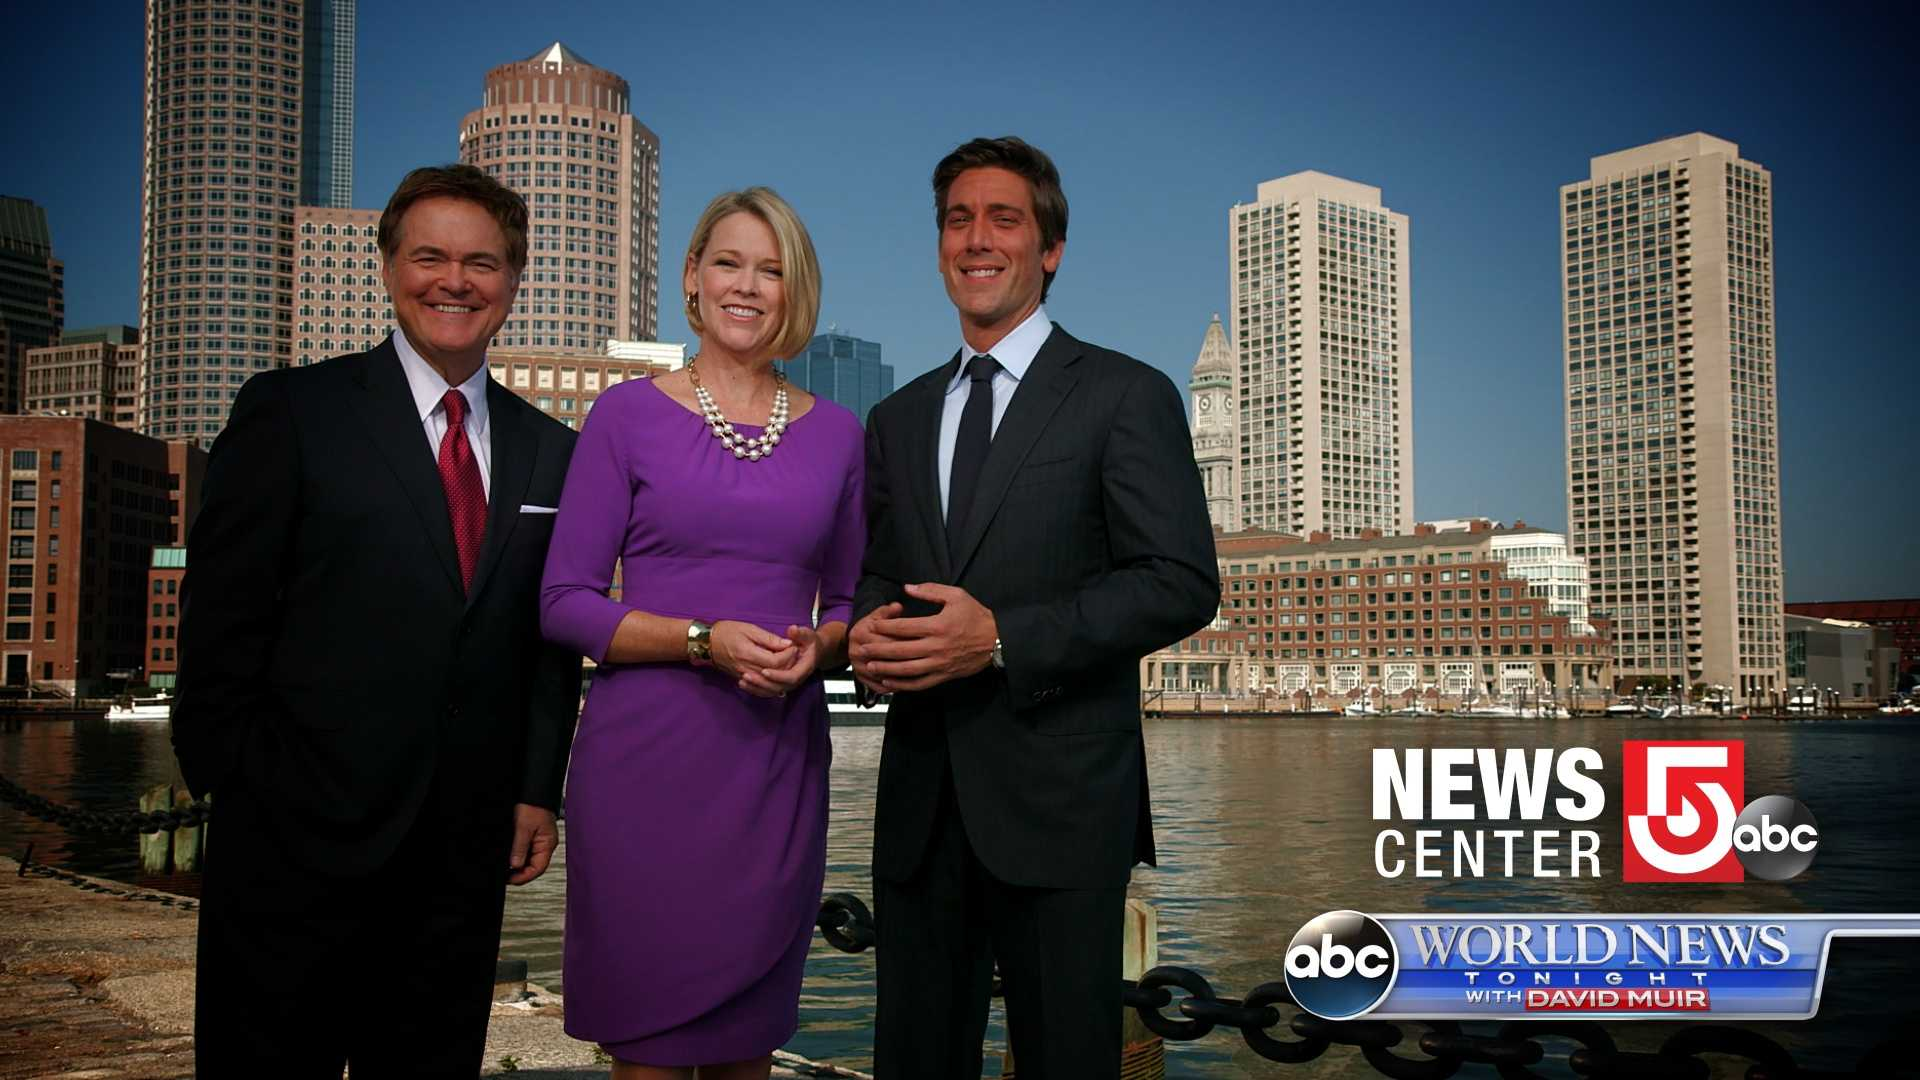 World News Tonight with David Muir airs every weeknight at 6:30, following NewsCenter 5 with Ed Harding and Heather Unruh at 6:00.